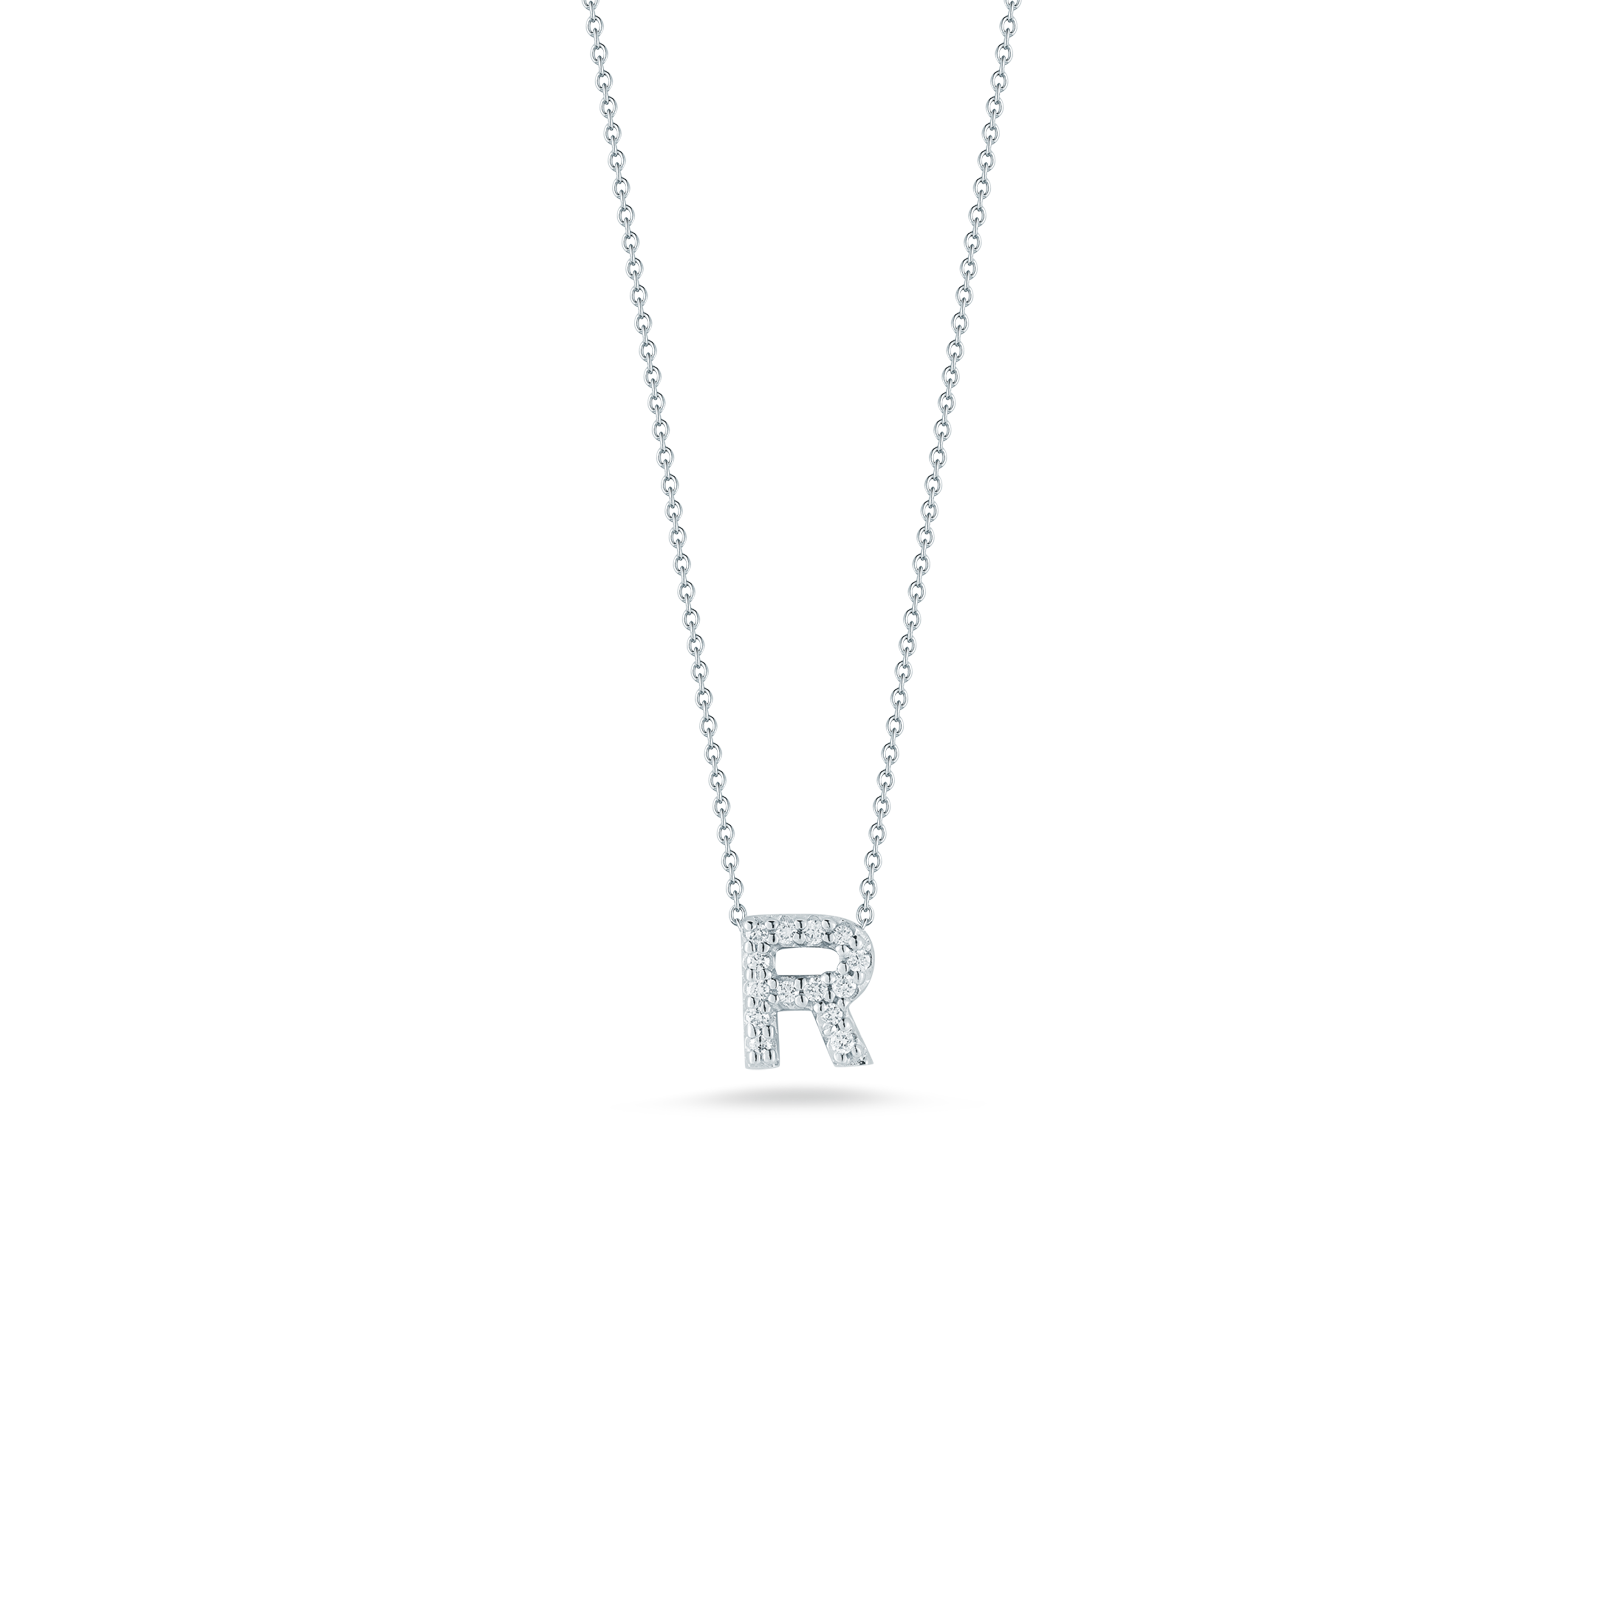 18K White Gold Love Letter R Pendant With Diamonds